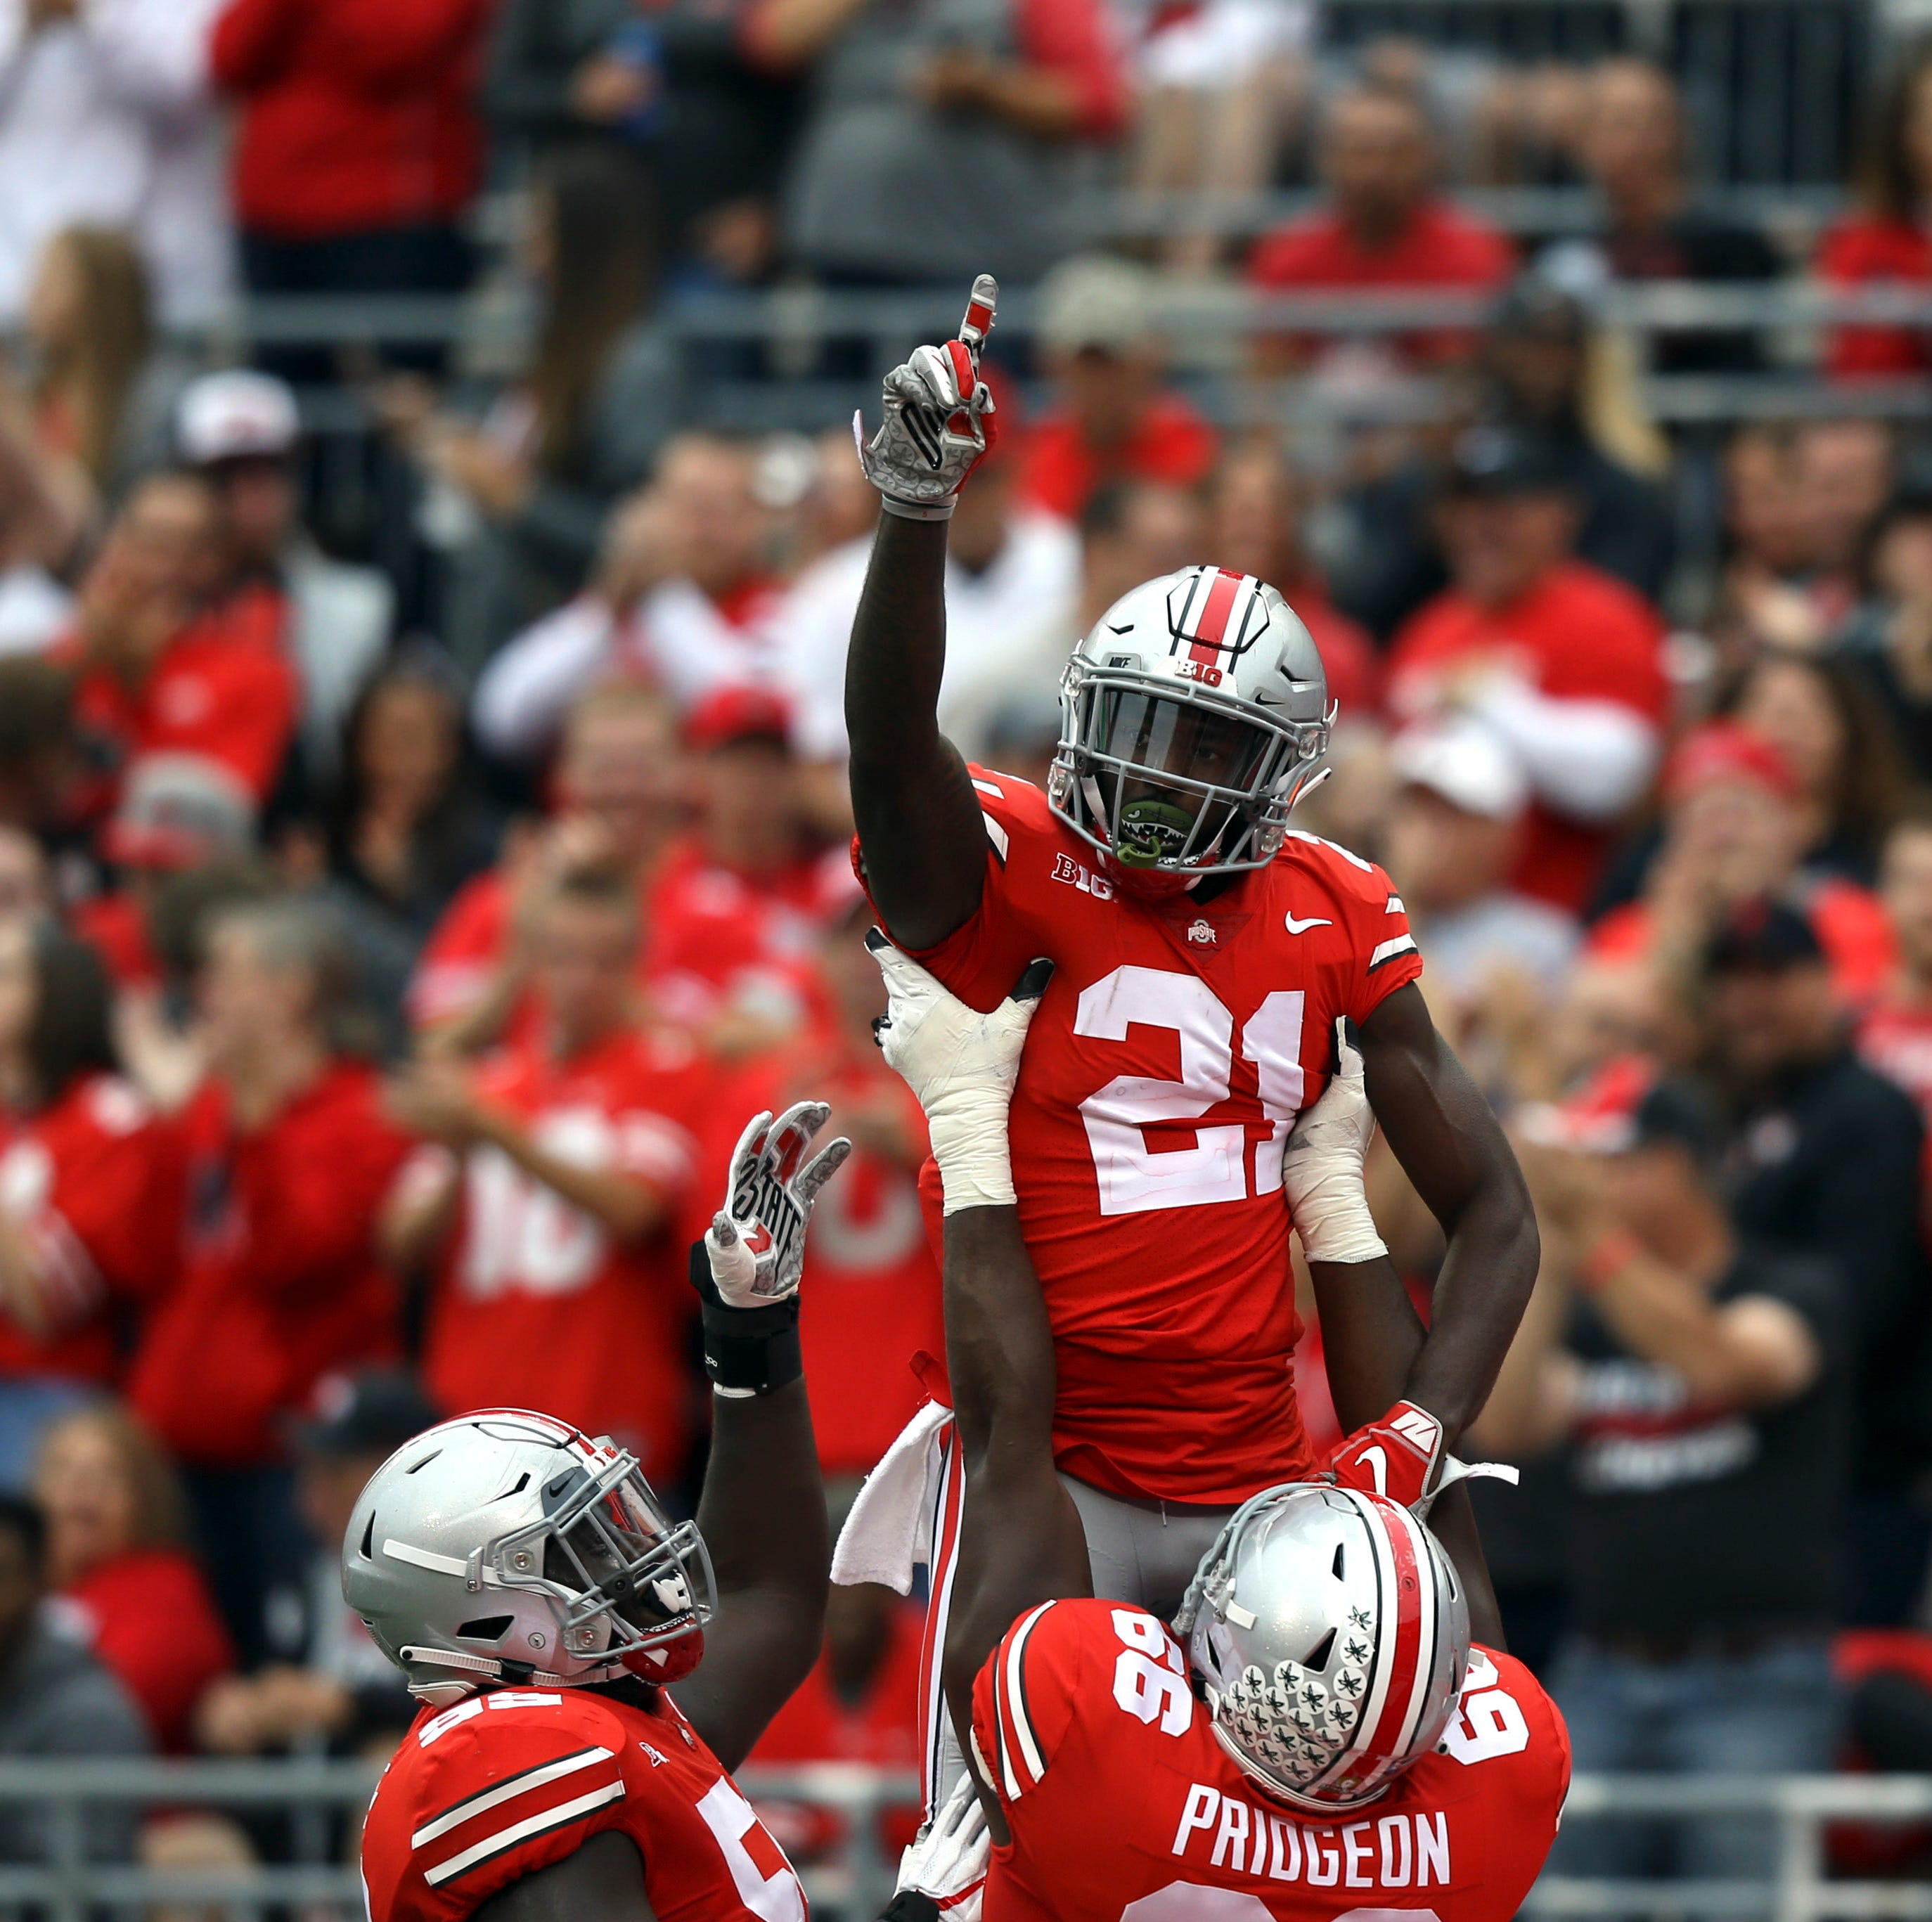 Bring on Penn State: OSU report card